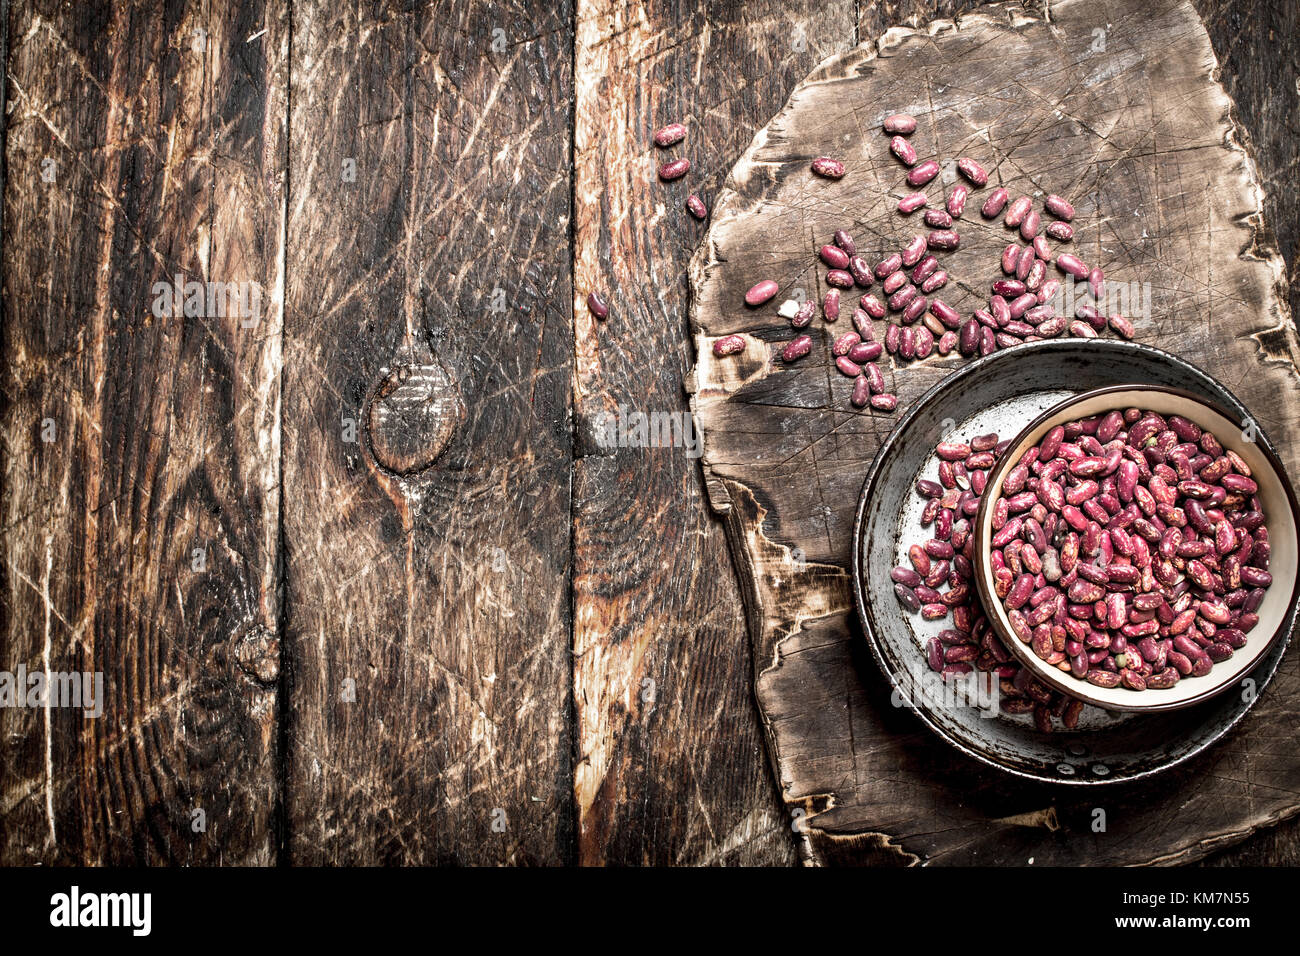 Red beans in a bowl. On a wooden table. - Stock Image